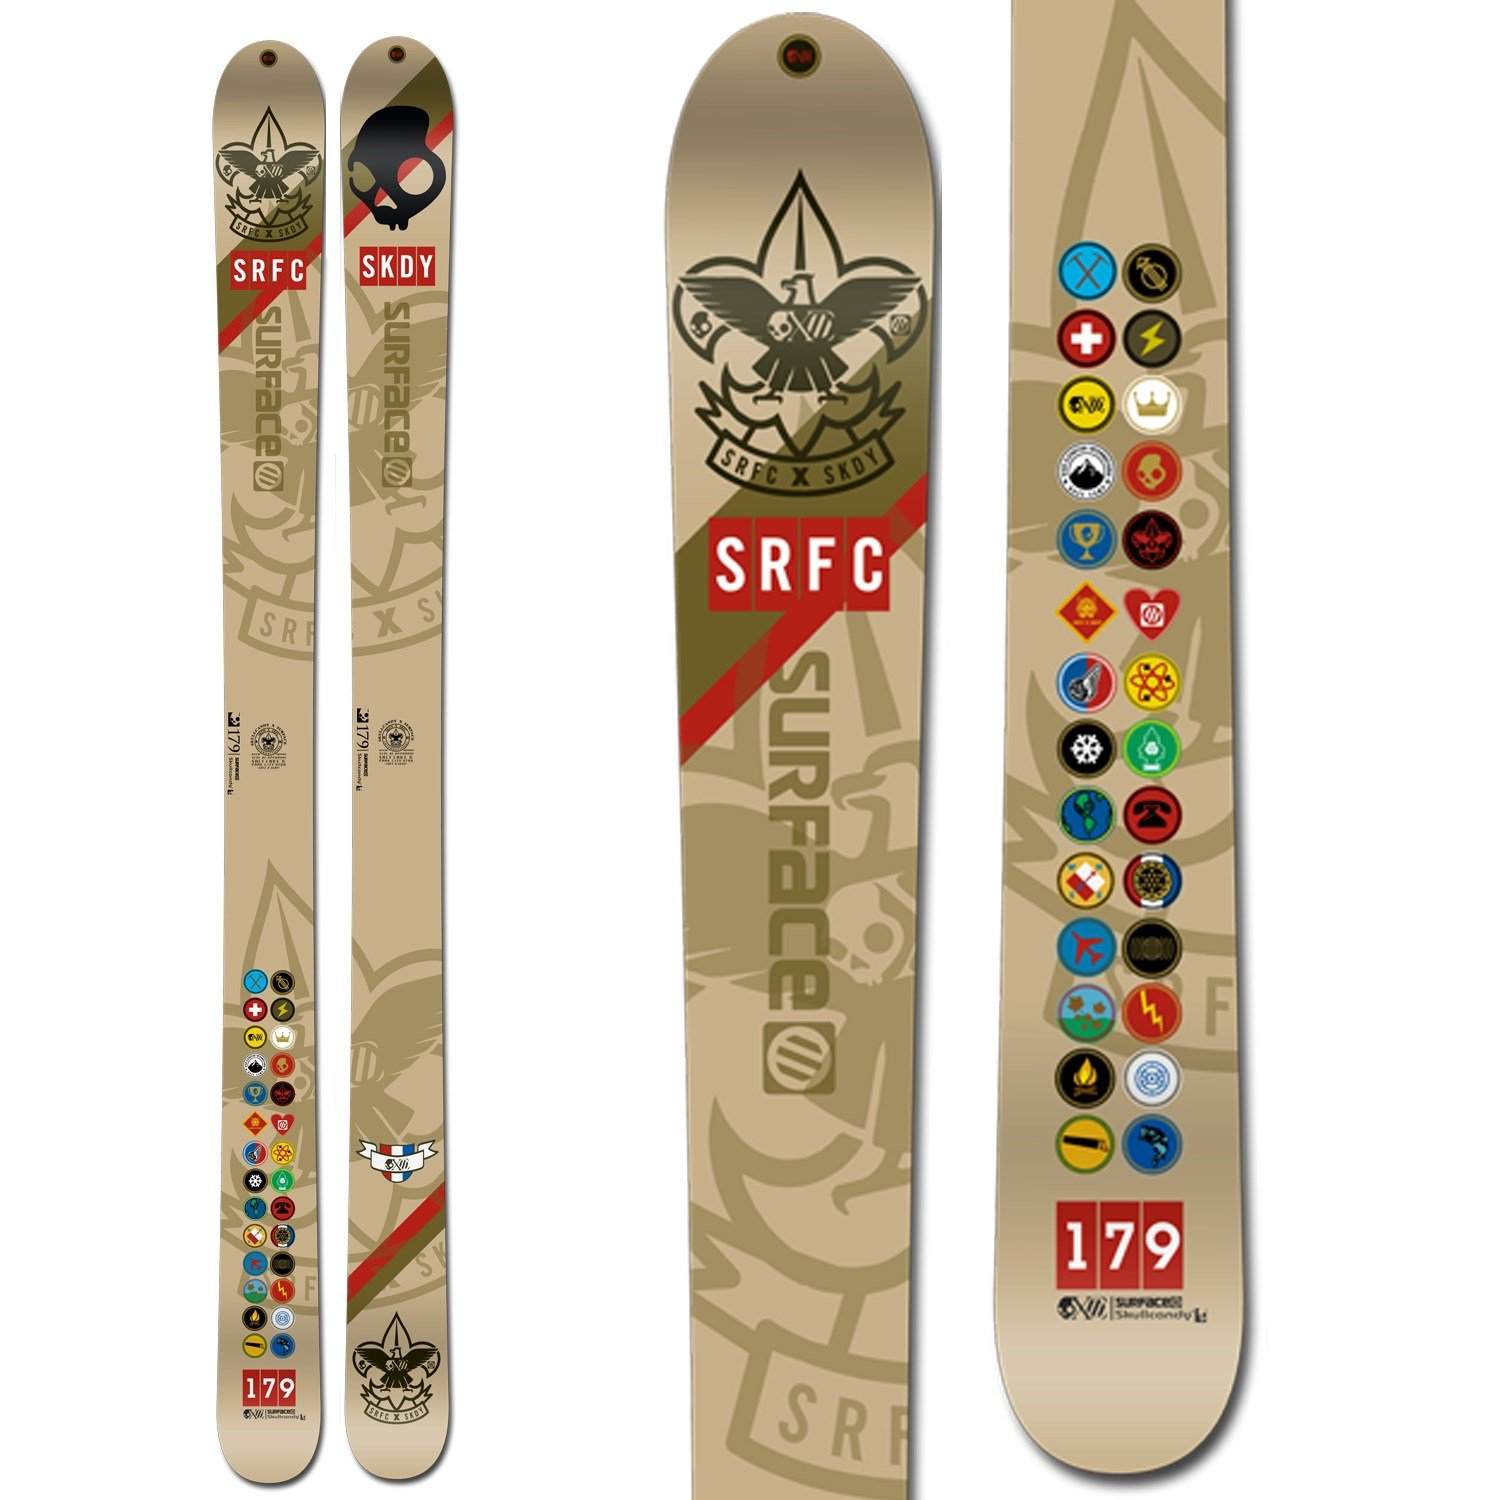 Surface x skull candy one life 189